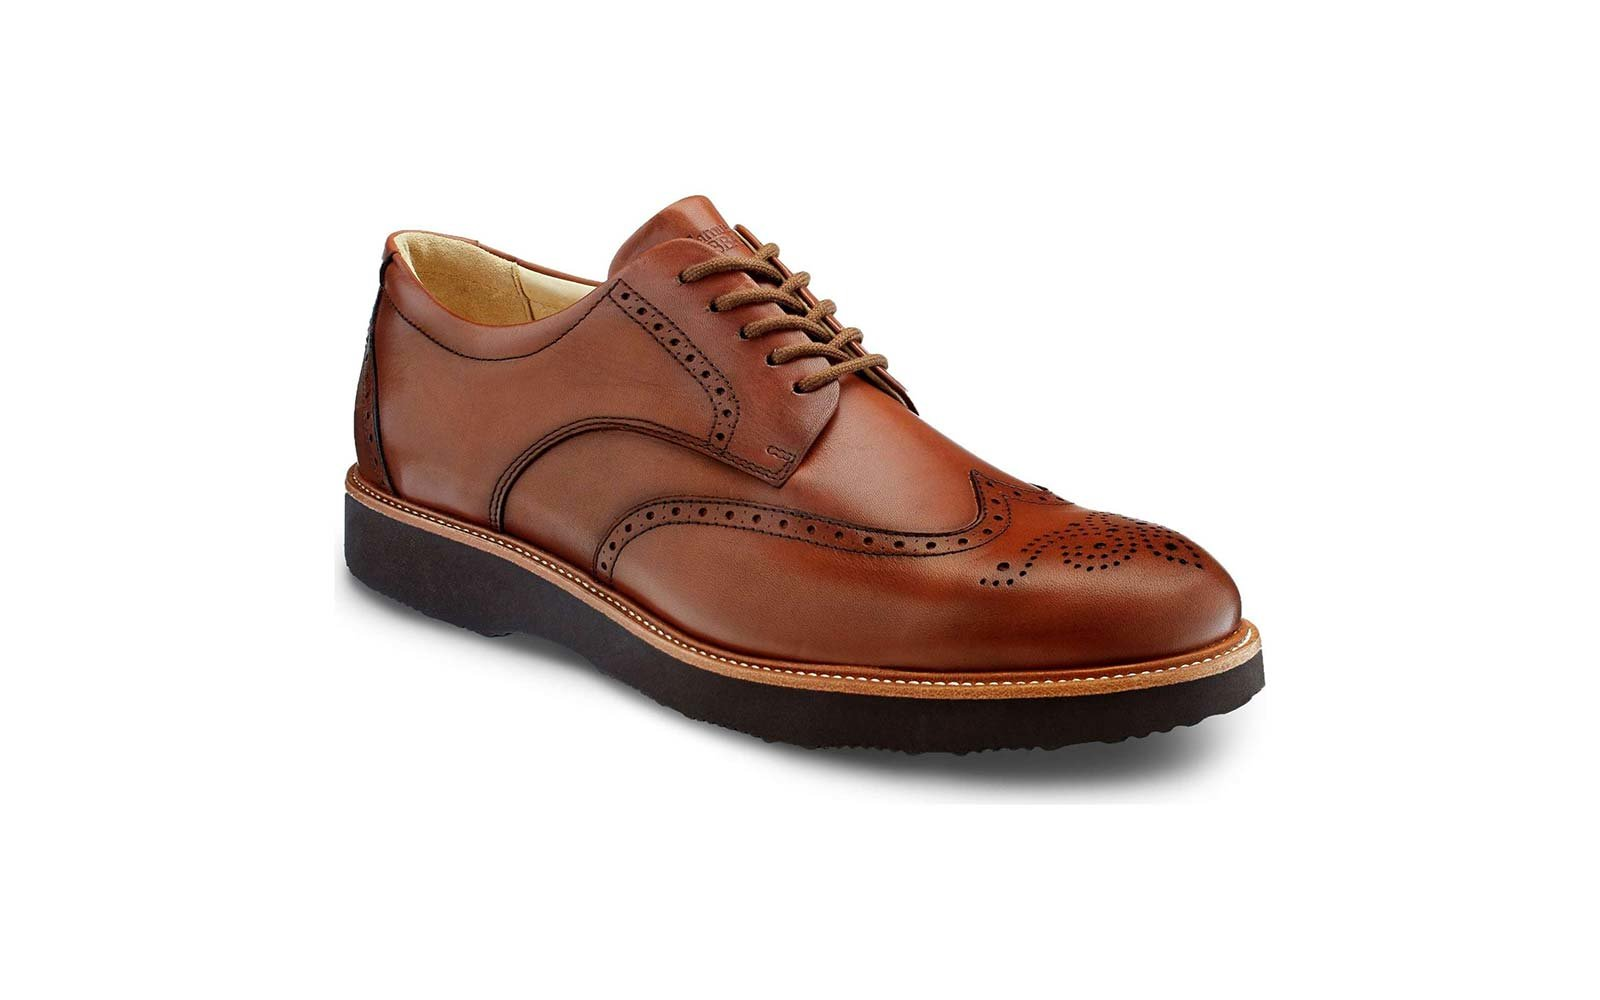 Samuel Hubbard Wingtip Oxford Shoe